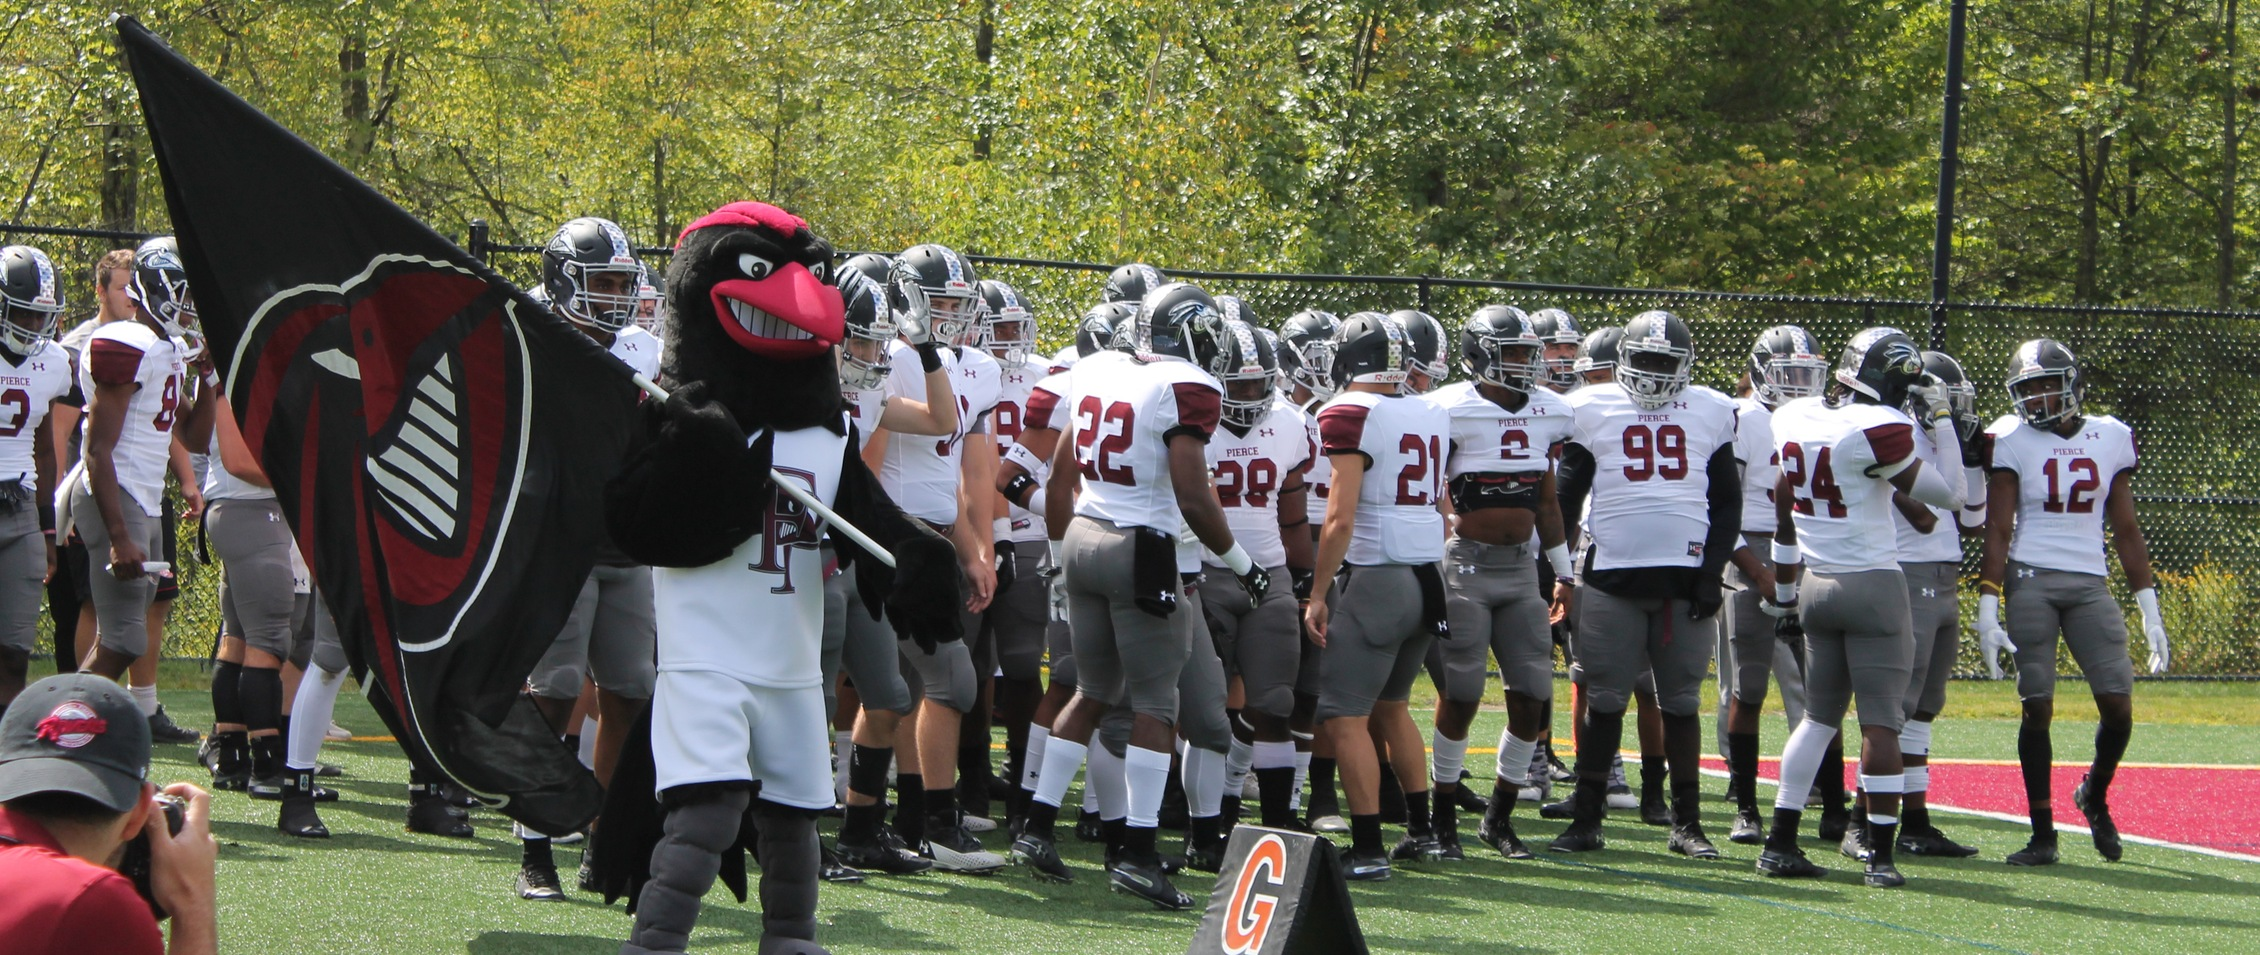 FPU Football and Rocky get ready to run on the field (Photo Courtesy of Maggie McComish)